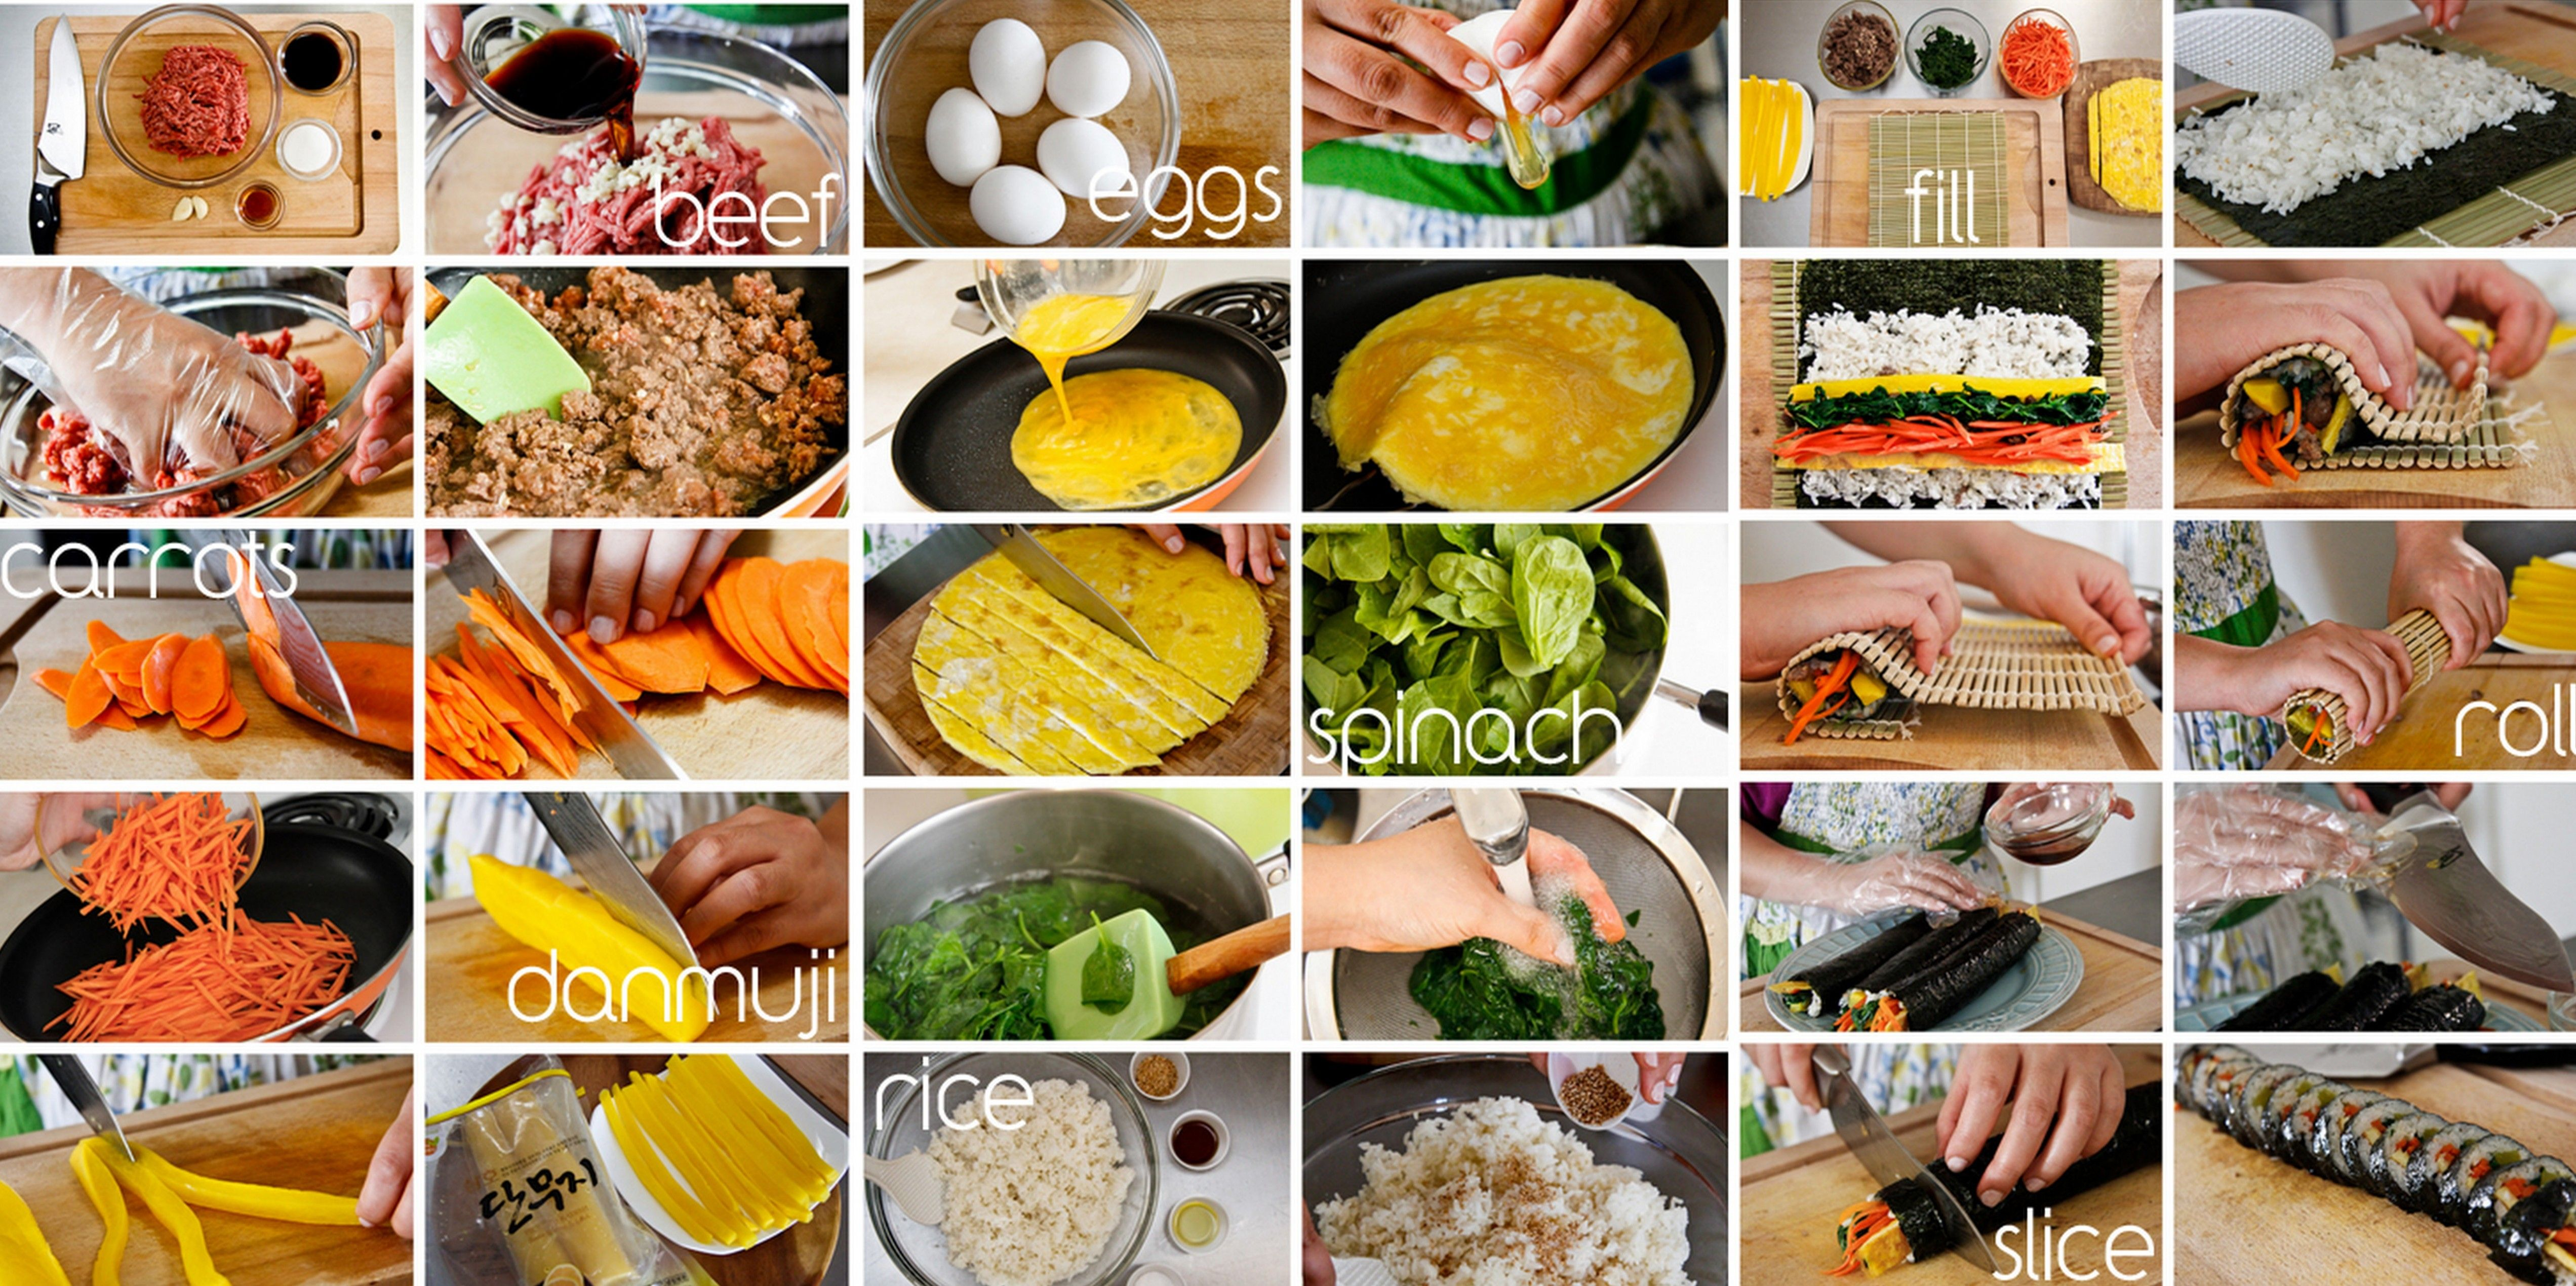 Pin by Candice Jones on Asian Food | Pinterest